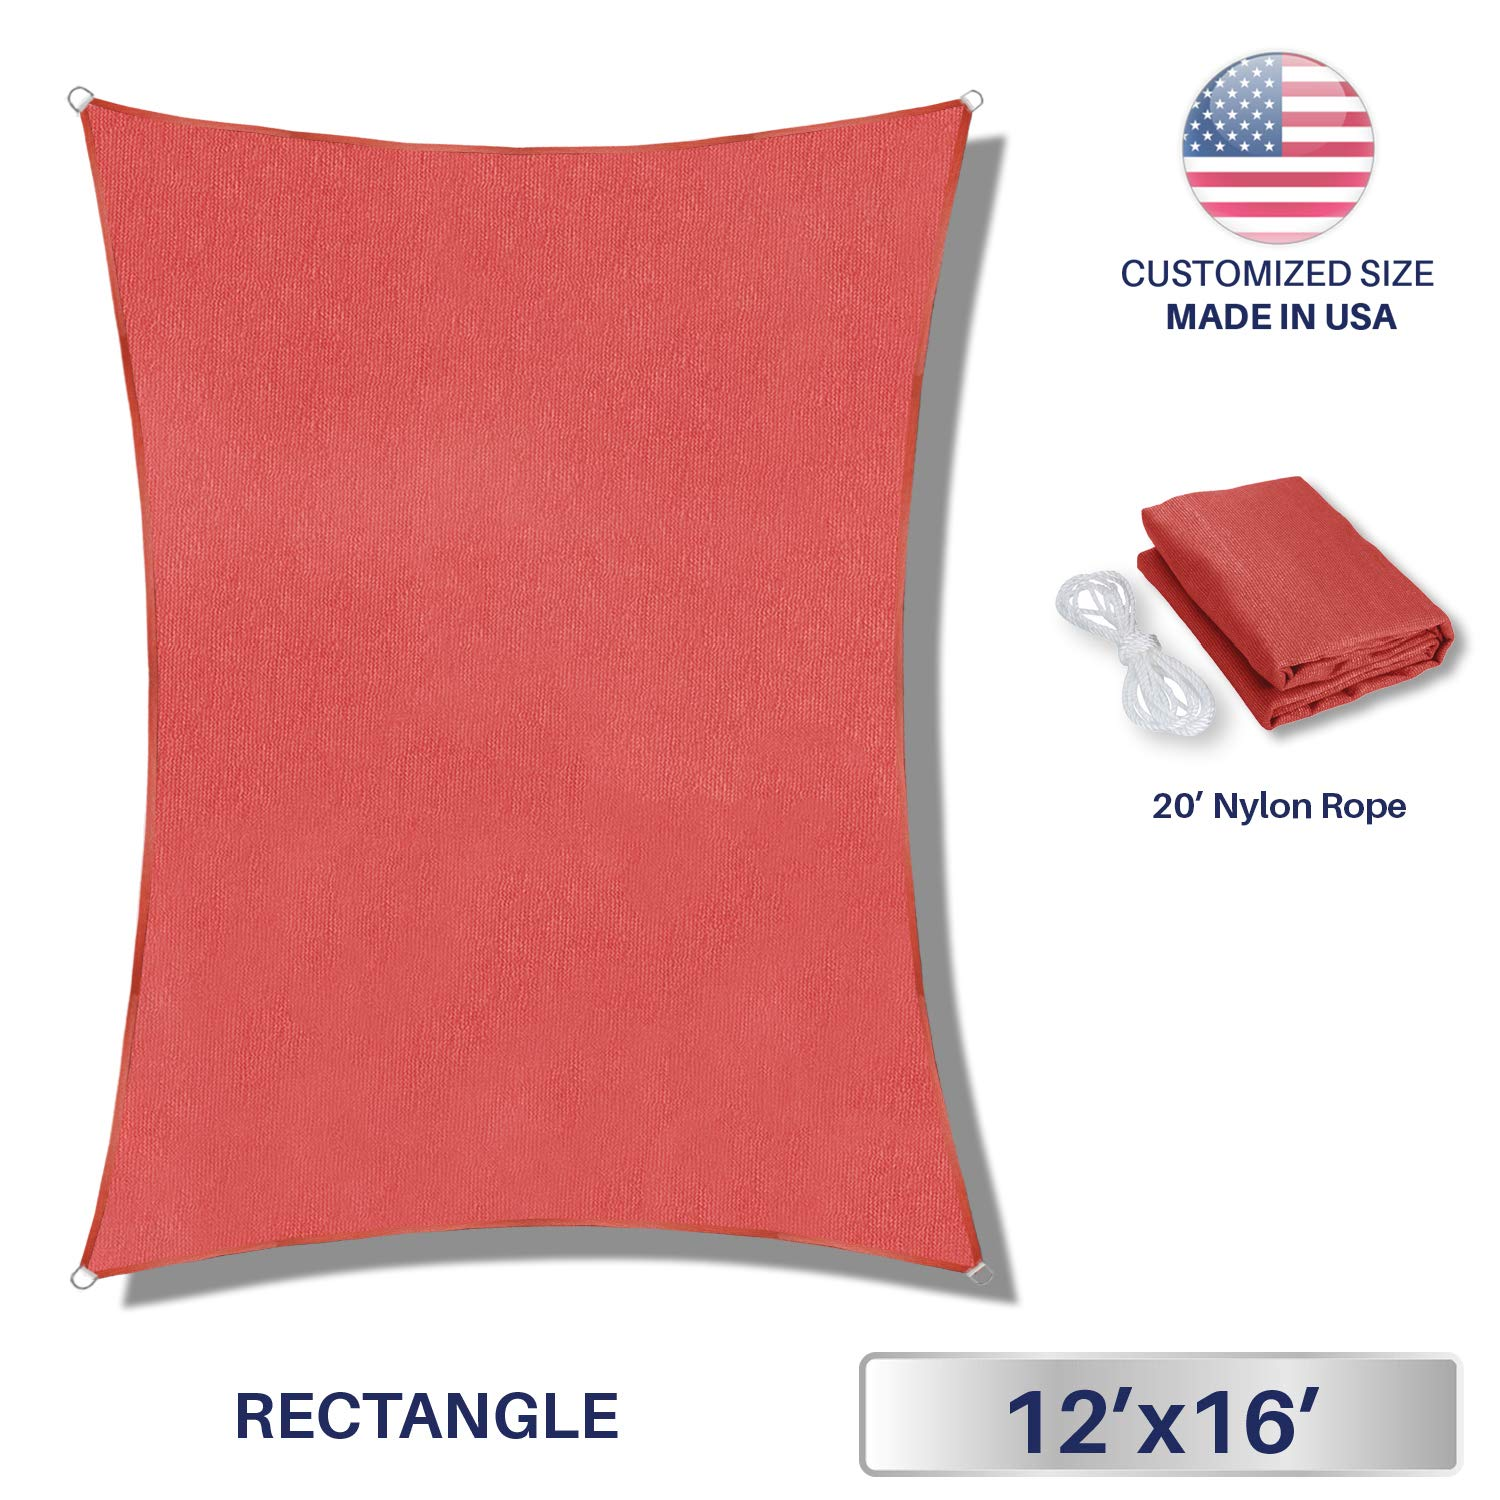 Windscreen4less 12'x16' Sun Shade Sail for Outdoor Patio Backyard UV Block Awning with Steel D-Rings Ruby Red Rectangle, Custom, 12ft x 16ft by Windscreen4less